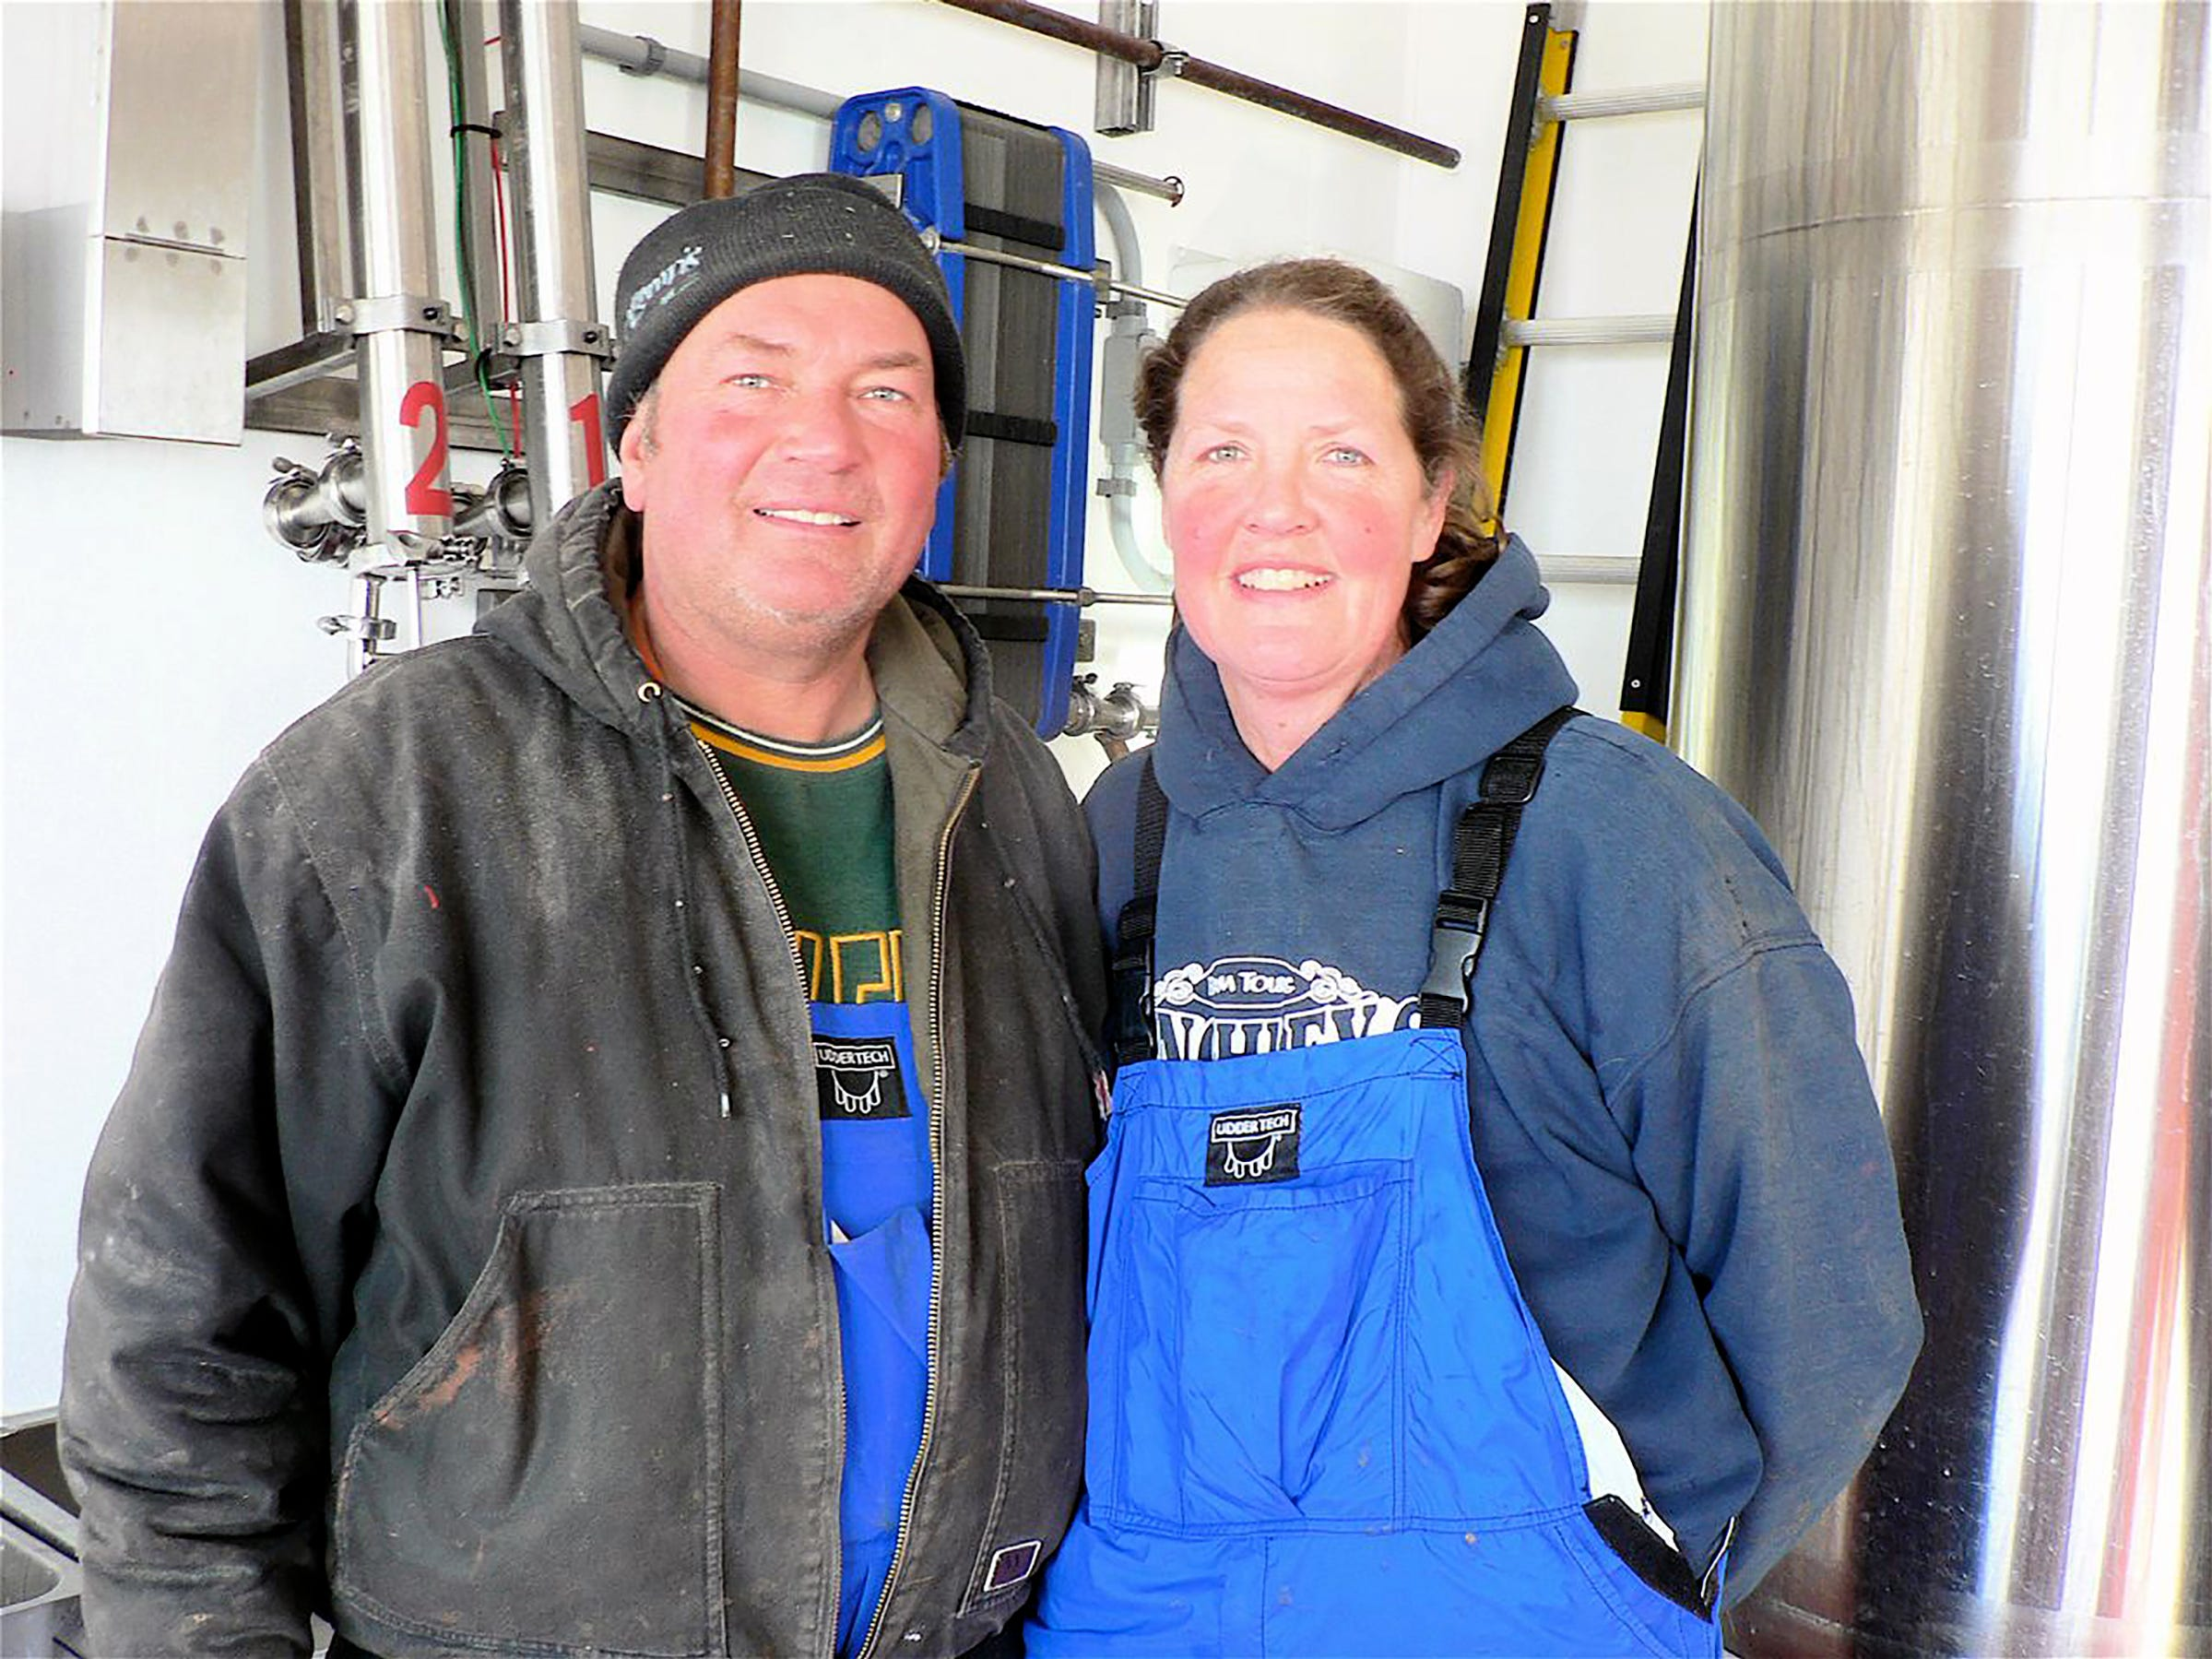 Duane and Tina Hinchley, Cambridge entered the the robotic milki ng era on Dec. 4, 2018. They love their Udder Tech clothing.